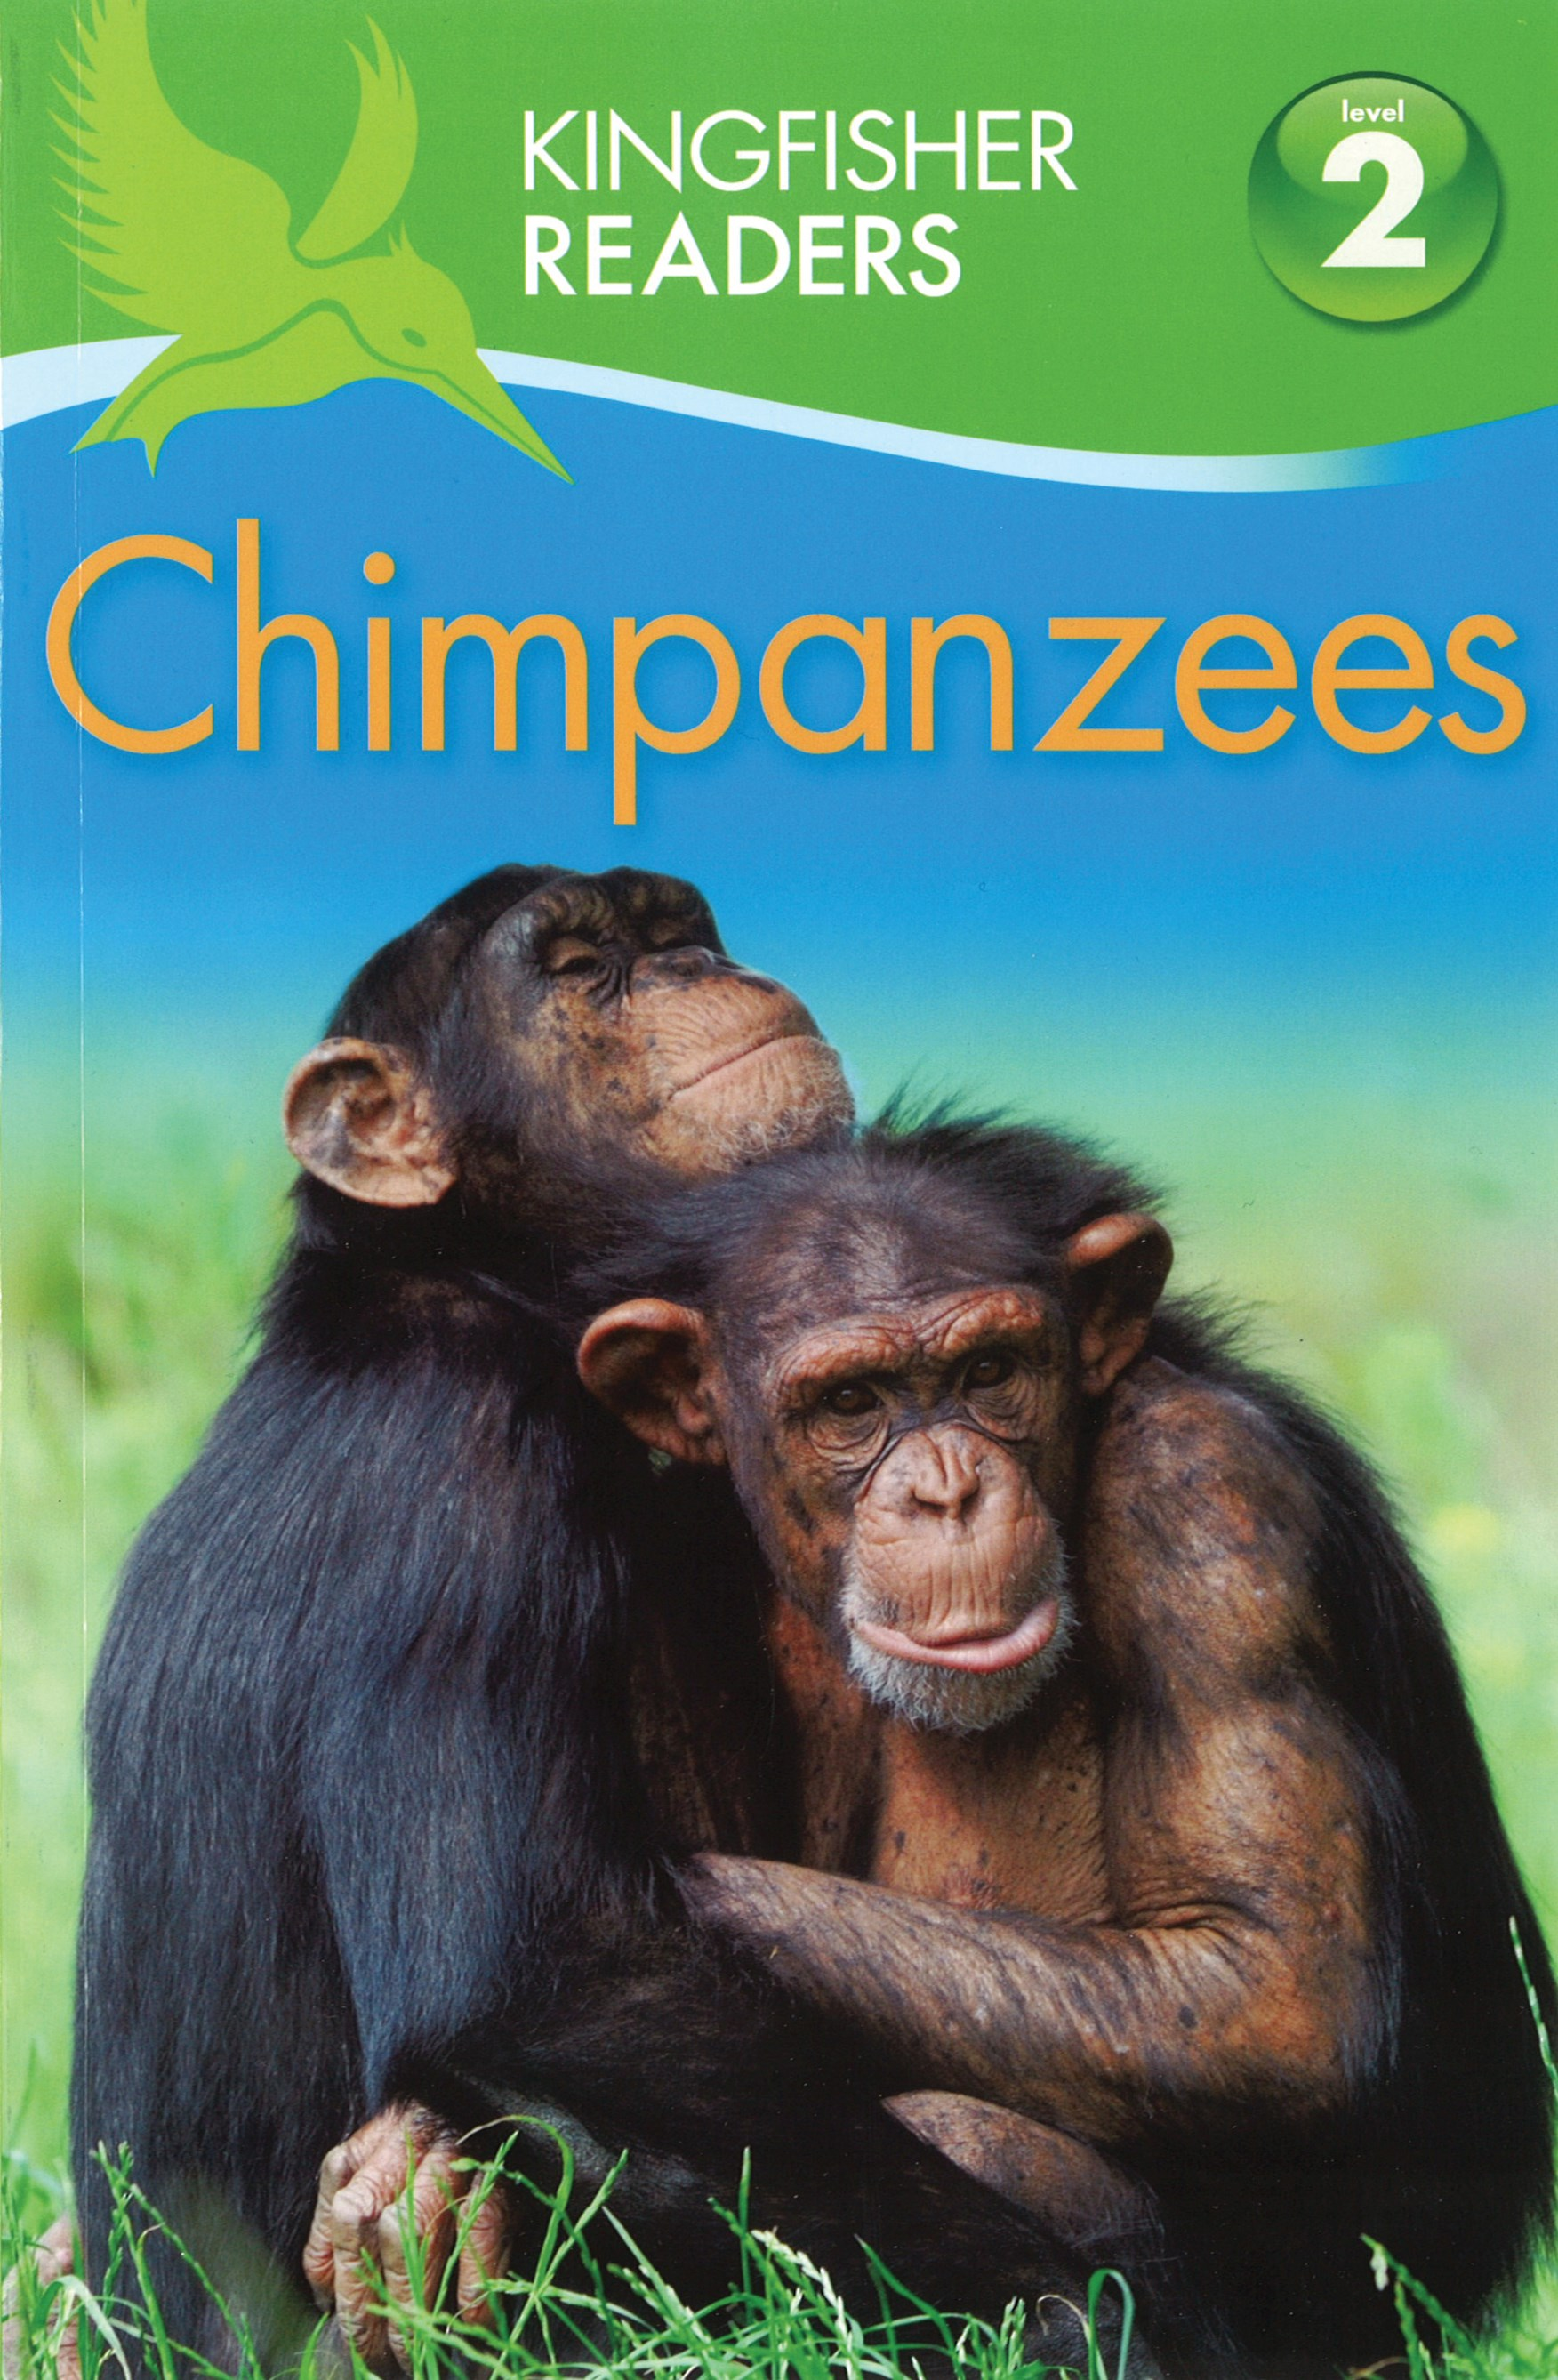 Chimpanzees Level 2